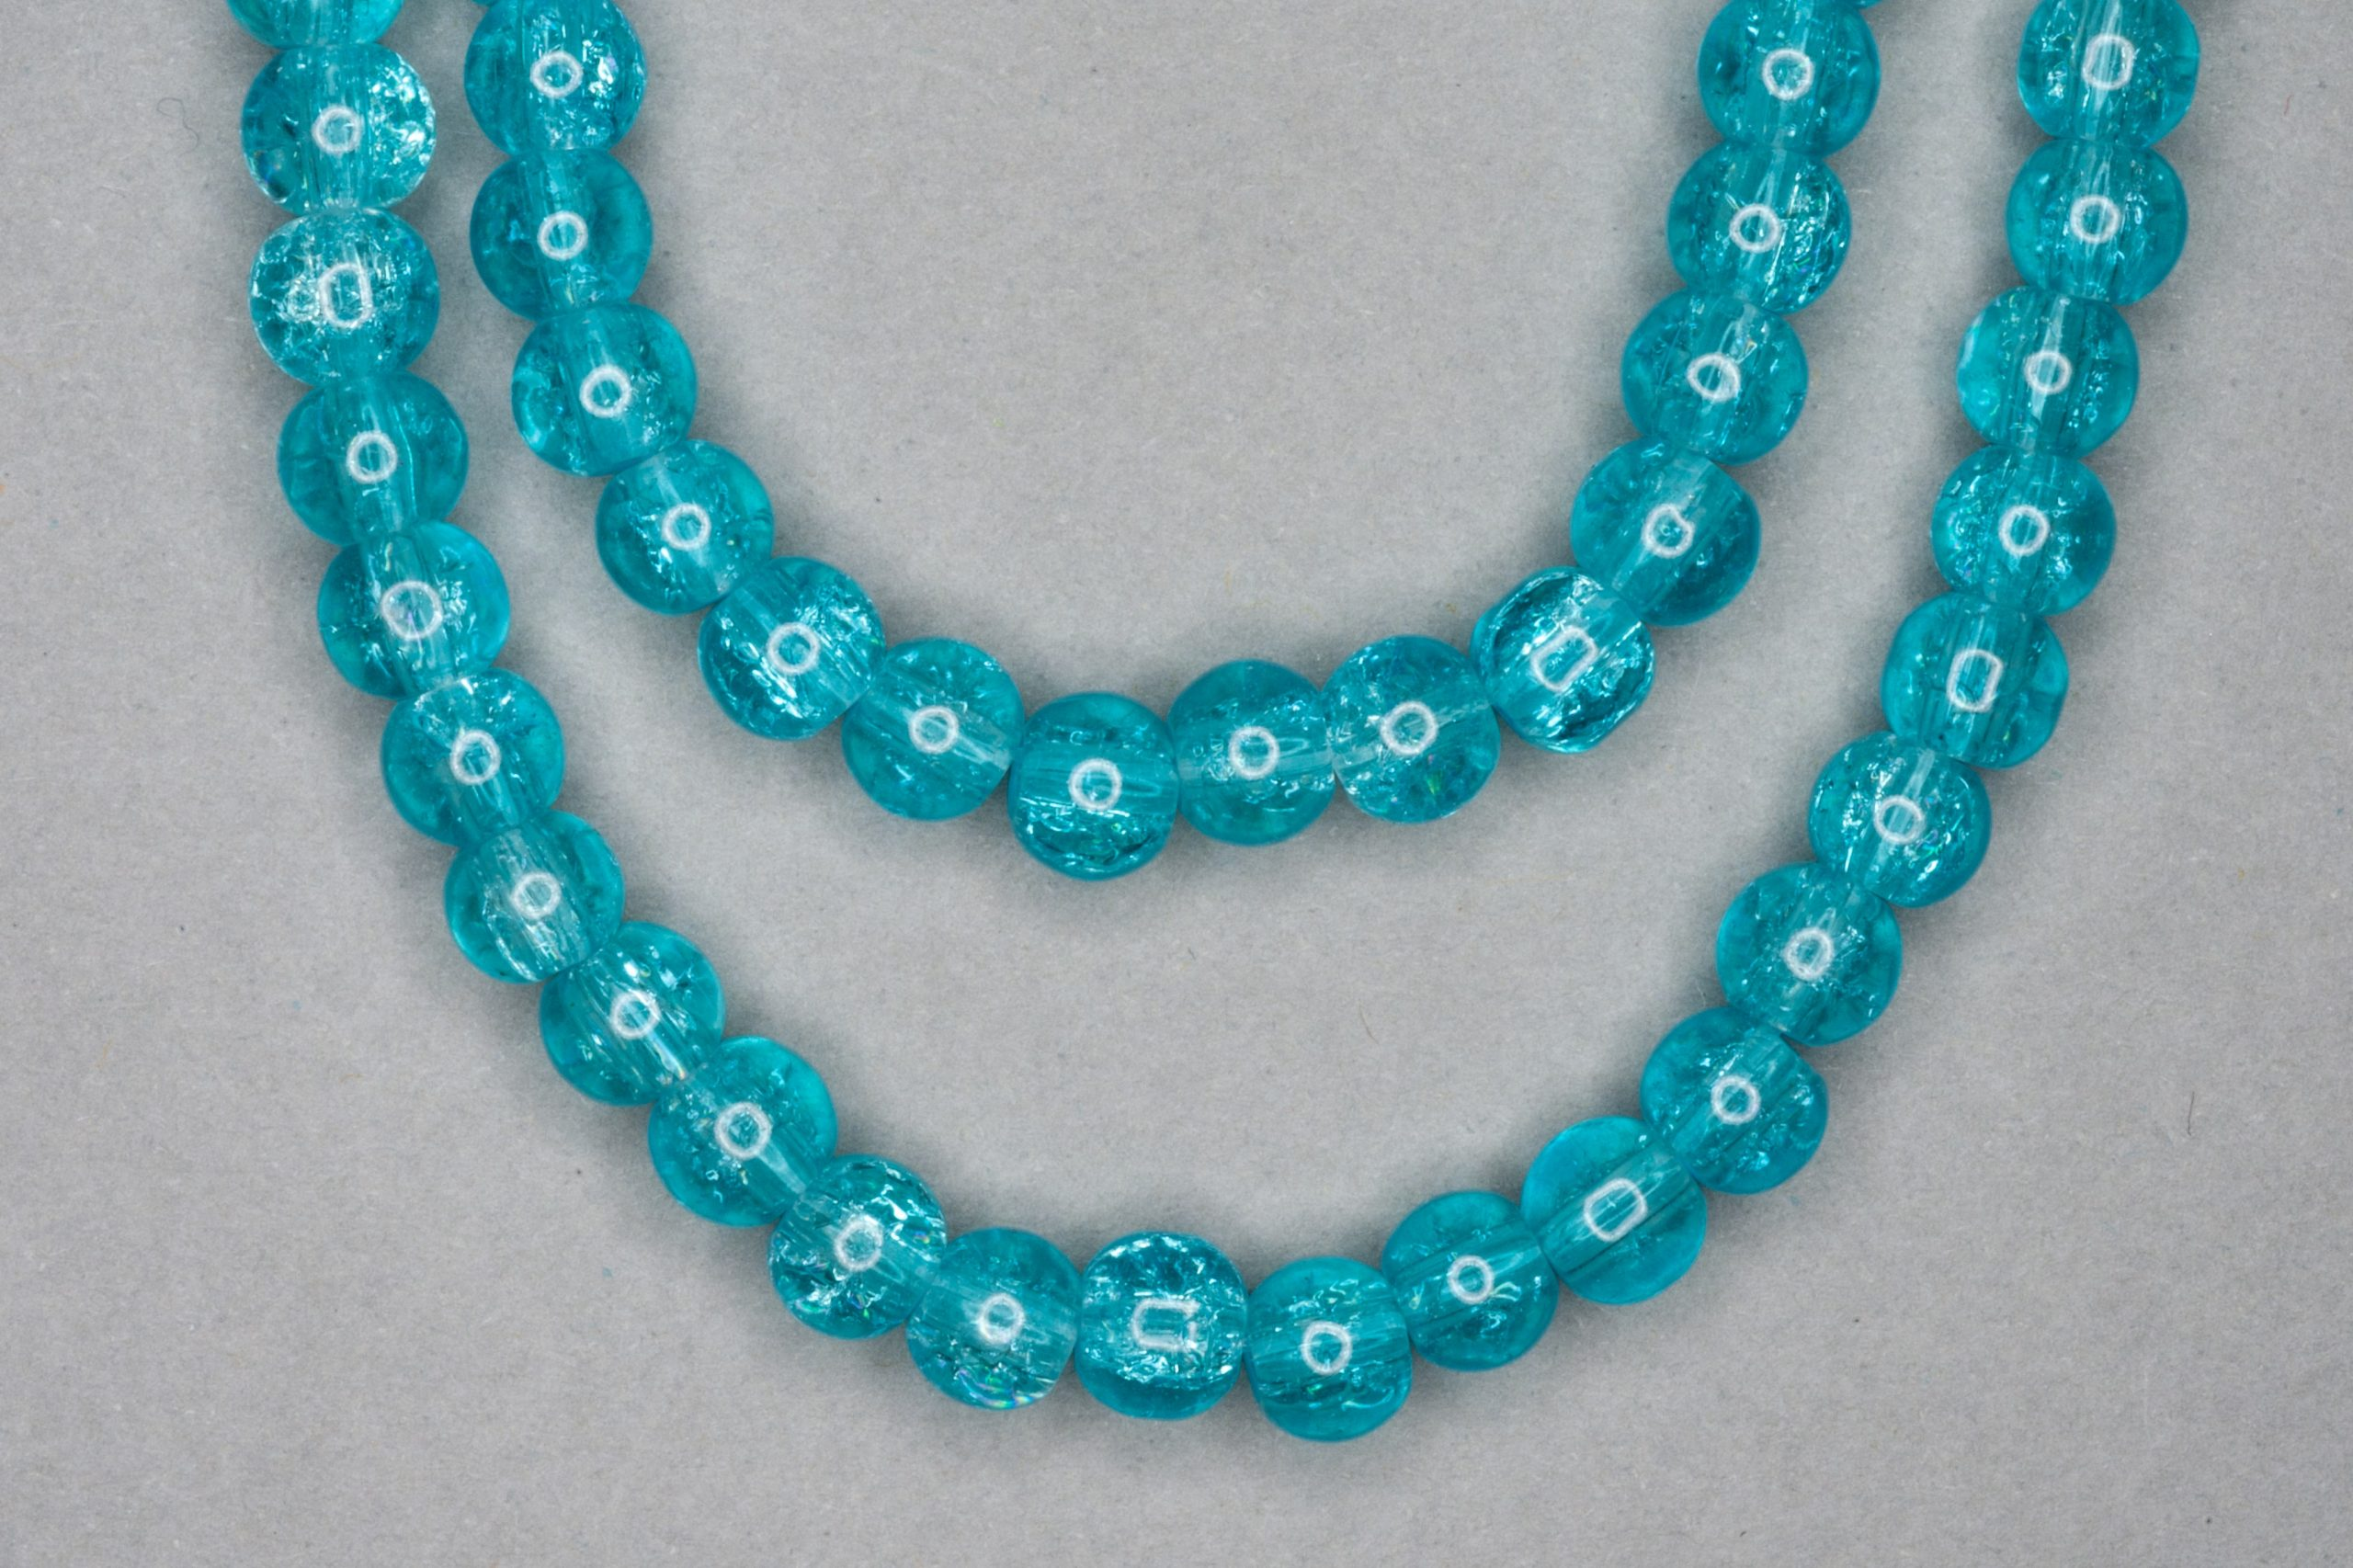 Aqua Blue Crackle Glass Beads